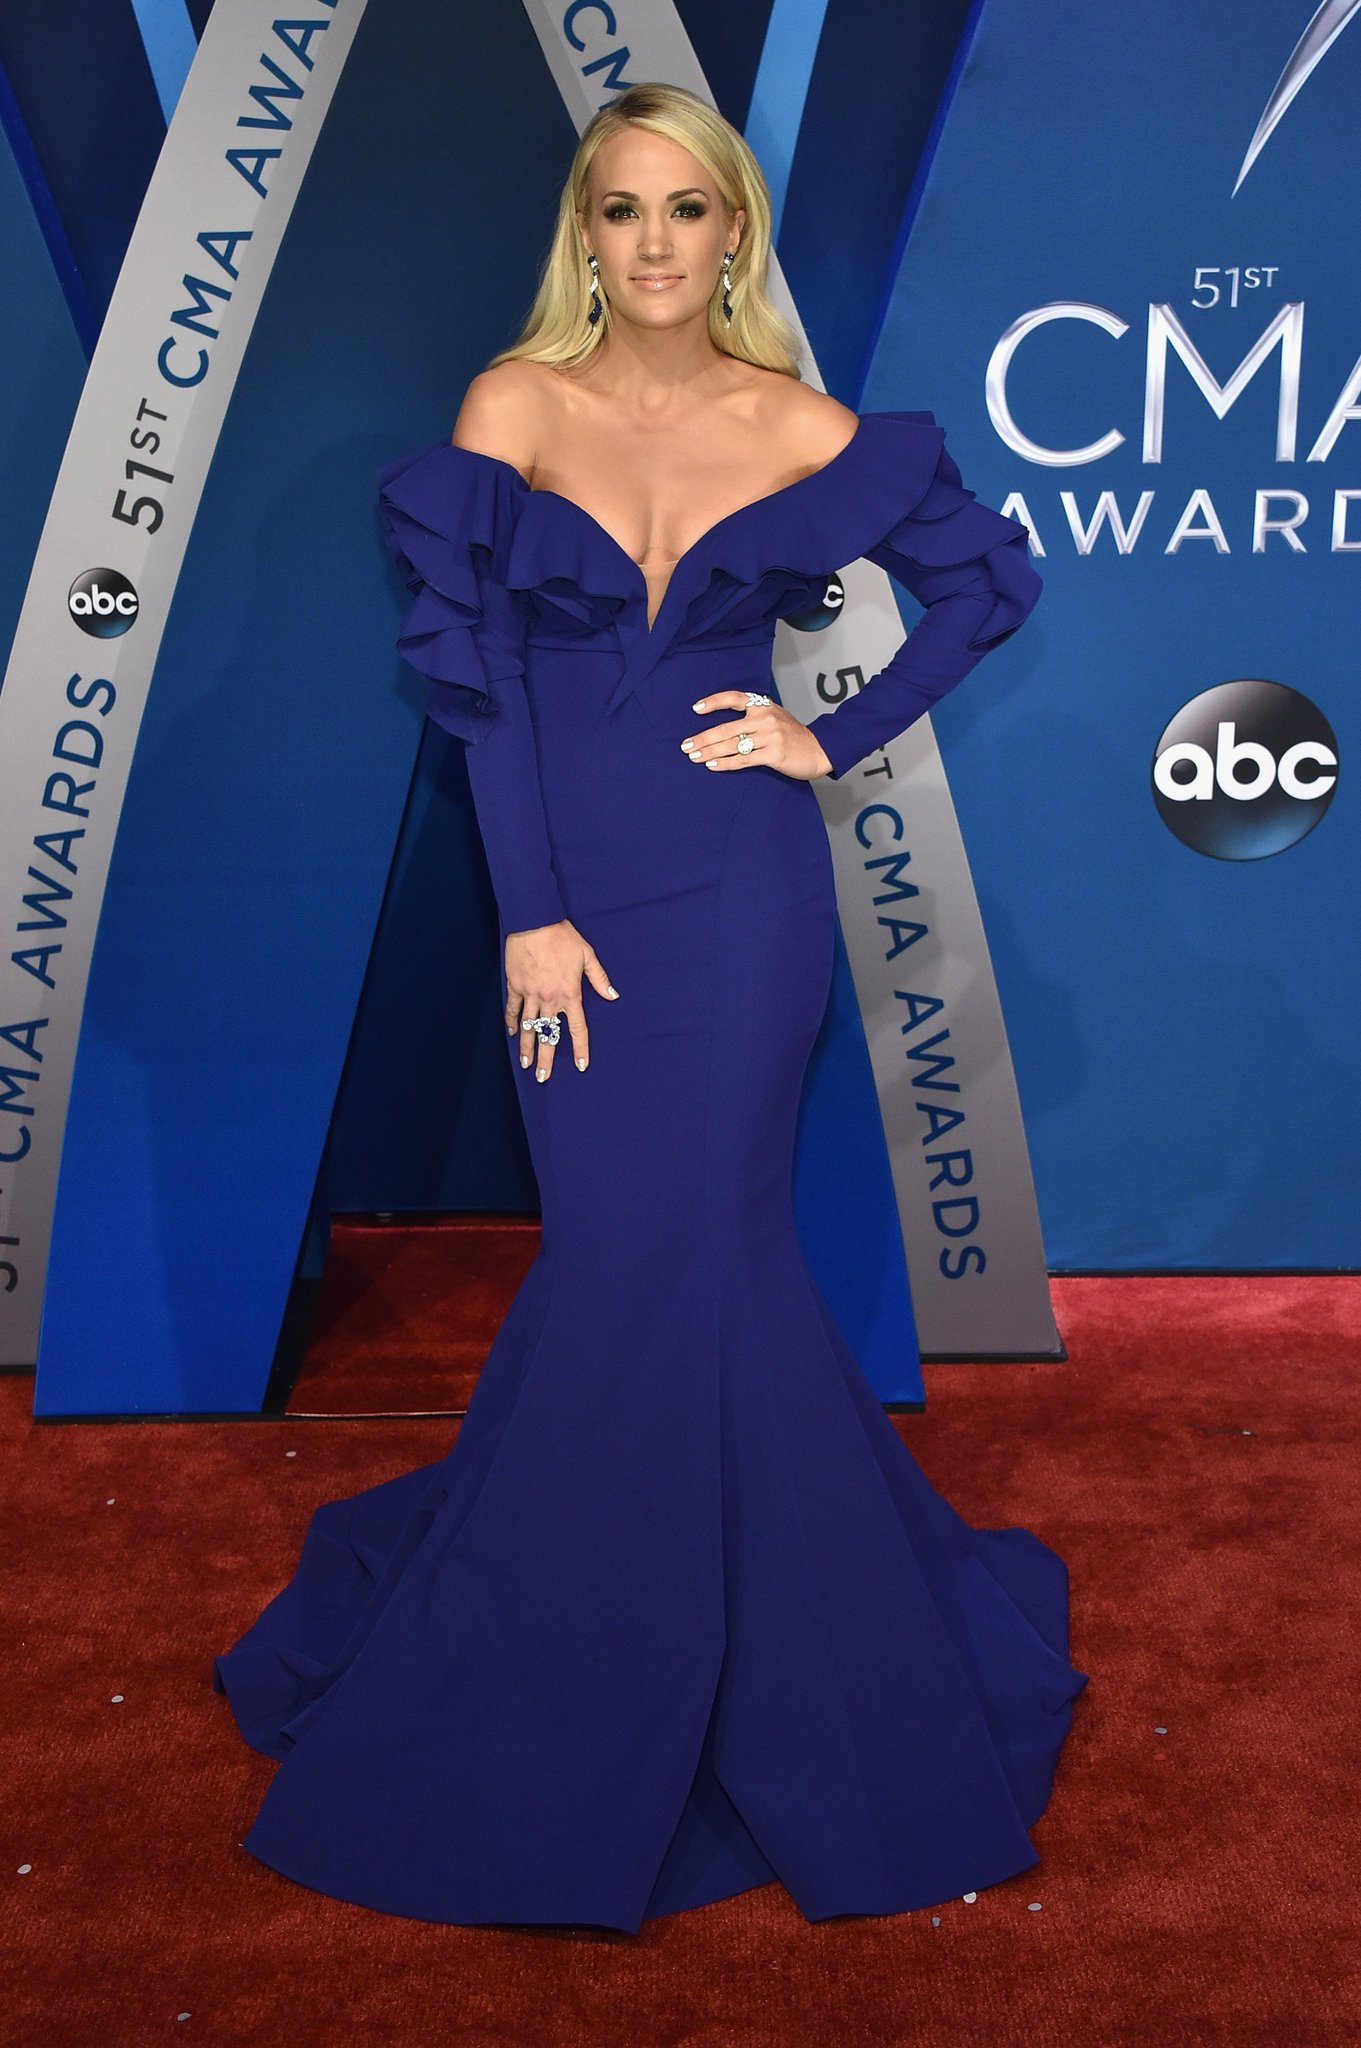 Brb, catching our breath. @CarrieUnderwood  #CMAAwards https://t.co/Y8k8AJgRUk